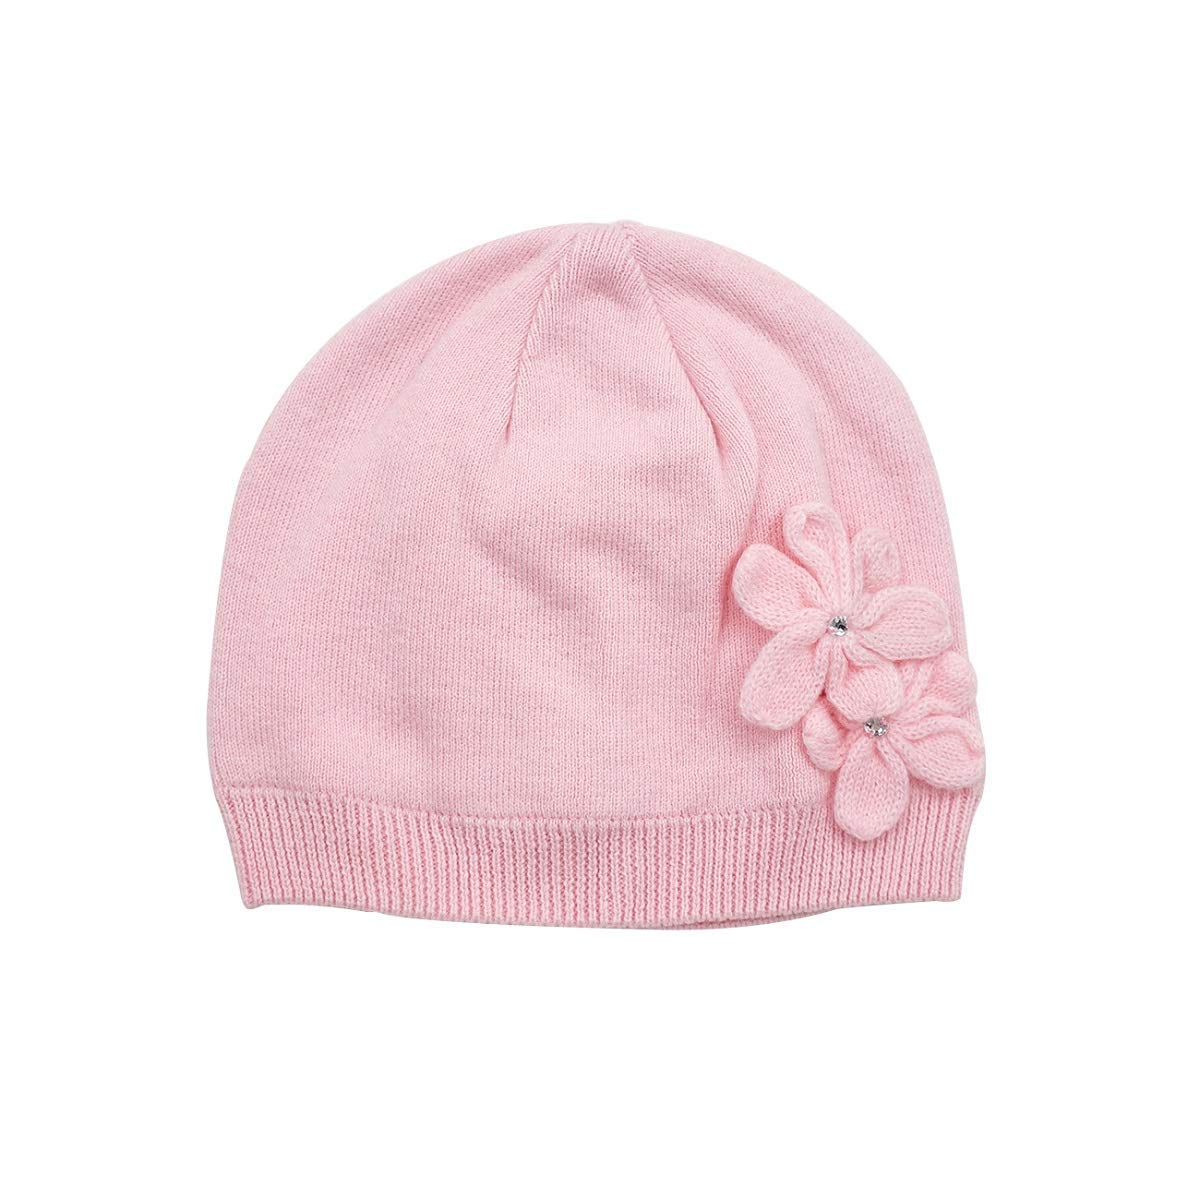 1d307573dcfc7 Get Quotations · LLmoway Kids Beanie Baby Infant Toddler Girls Soft Cotton  Warm Knit Hat